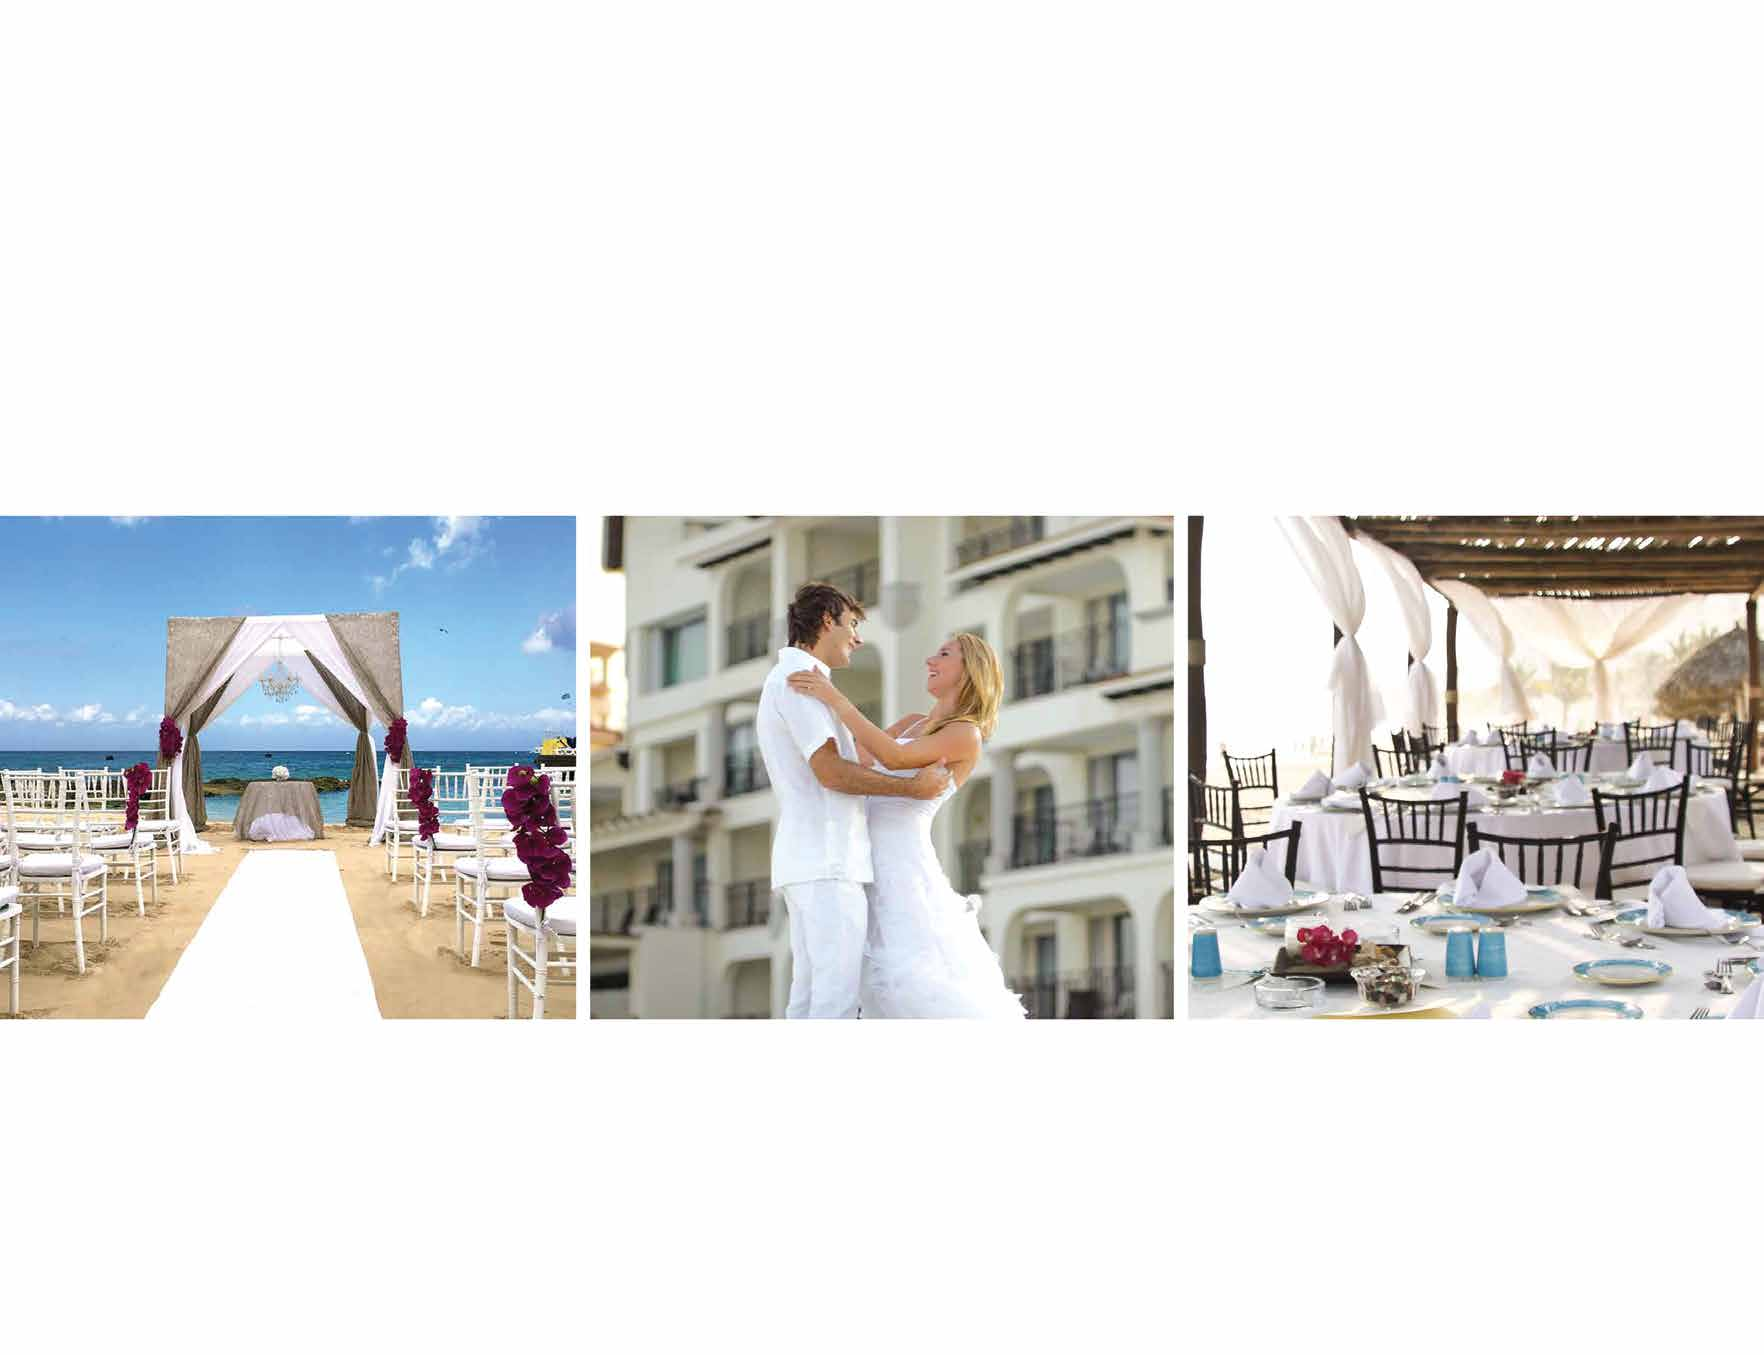 IVORY Hoteles Park Royal Desde Hoteles Grand Park Royal Desde $1,300 USD $1,400 USD PERLA ÁMBAR Hoteles Park Royal Desde Hoteles Grand Park Royal Desde Hoteles Park Royal Desde Hoteles Grand Park